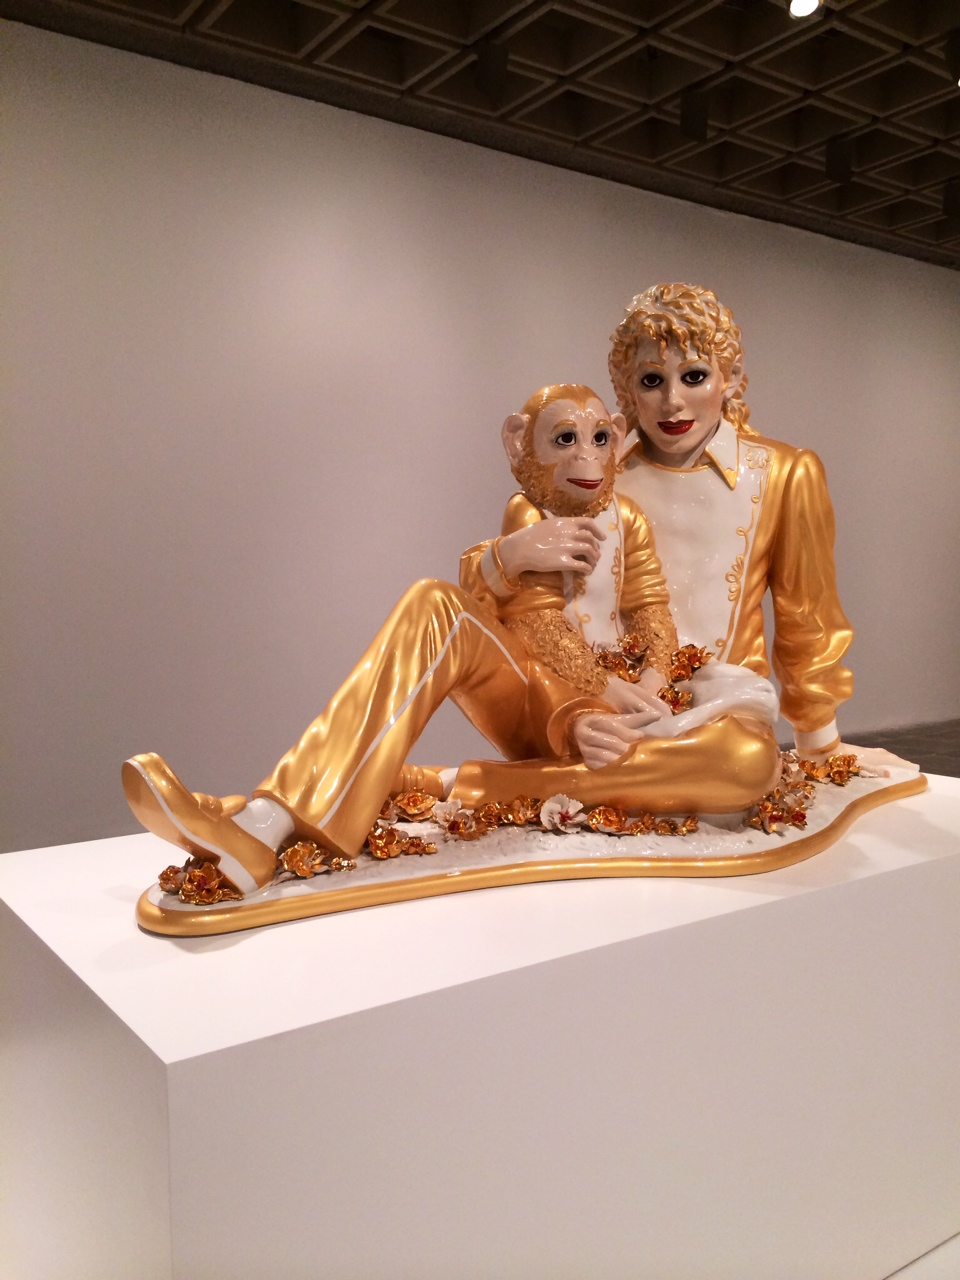 Bien connu art priori:The Koons Effect - art priori GD92